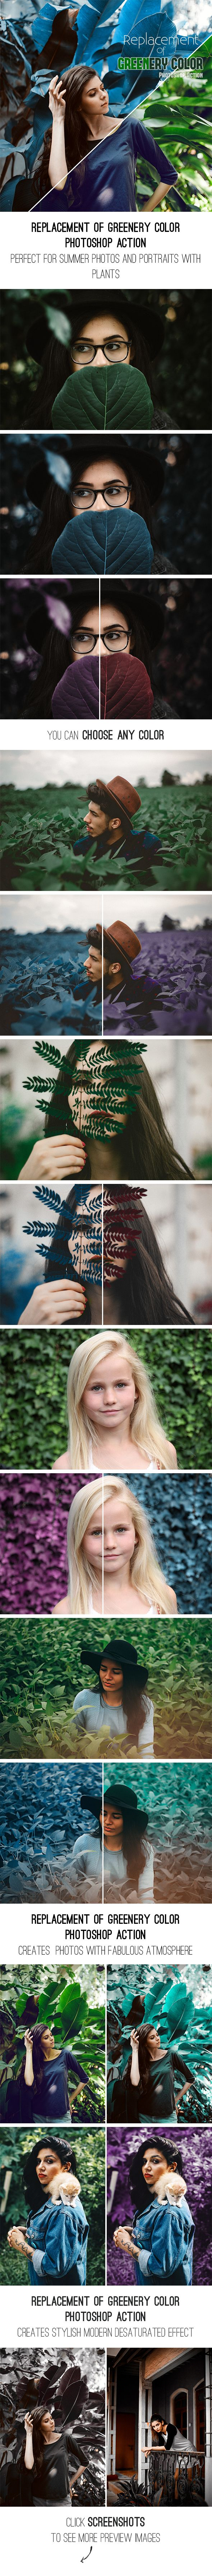 Replacement Of Greenery Color Photoshop Action — Photoshop ATN #action #fashion • Available here → https://graphicriver.net/item/replacement-of-greenery-color-photoshop-action/19707628?ref=pxcr